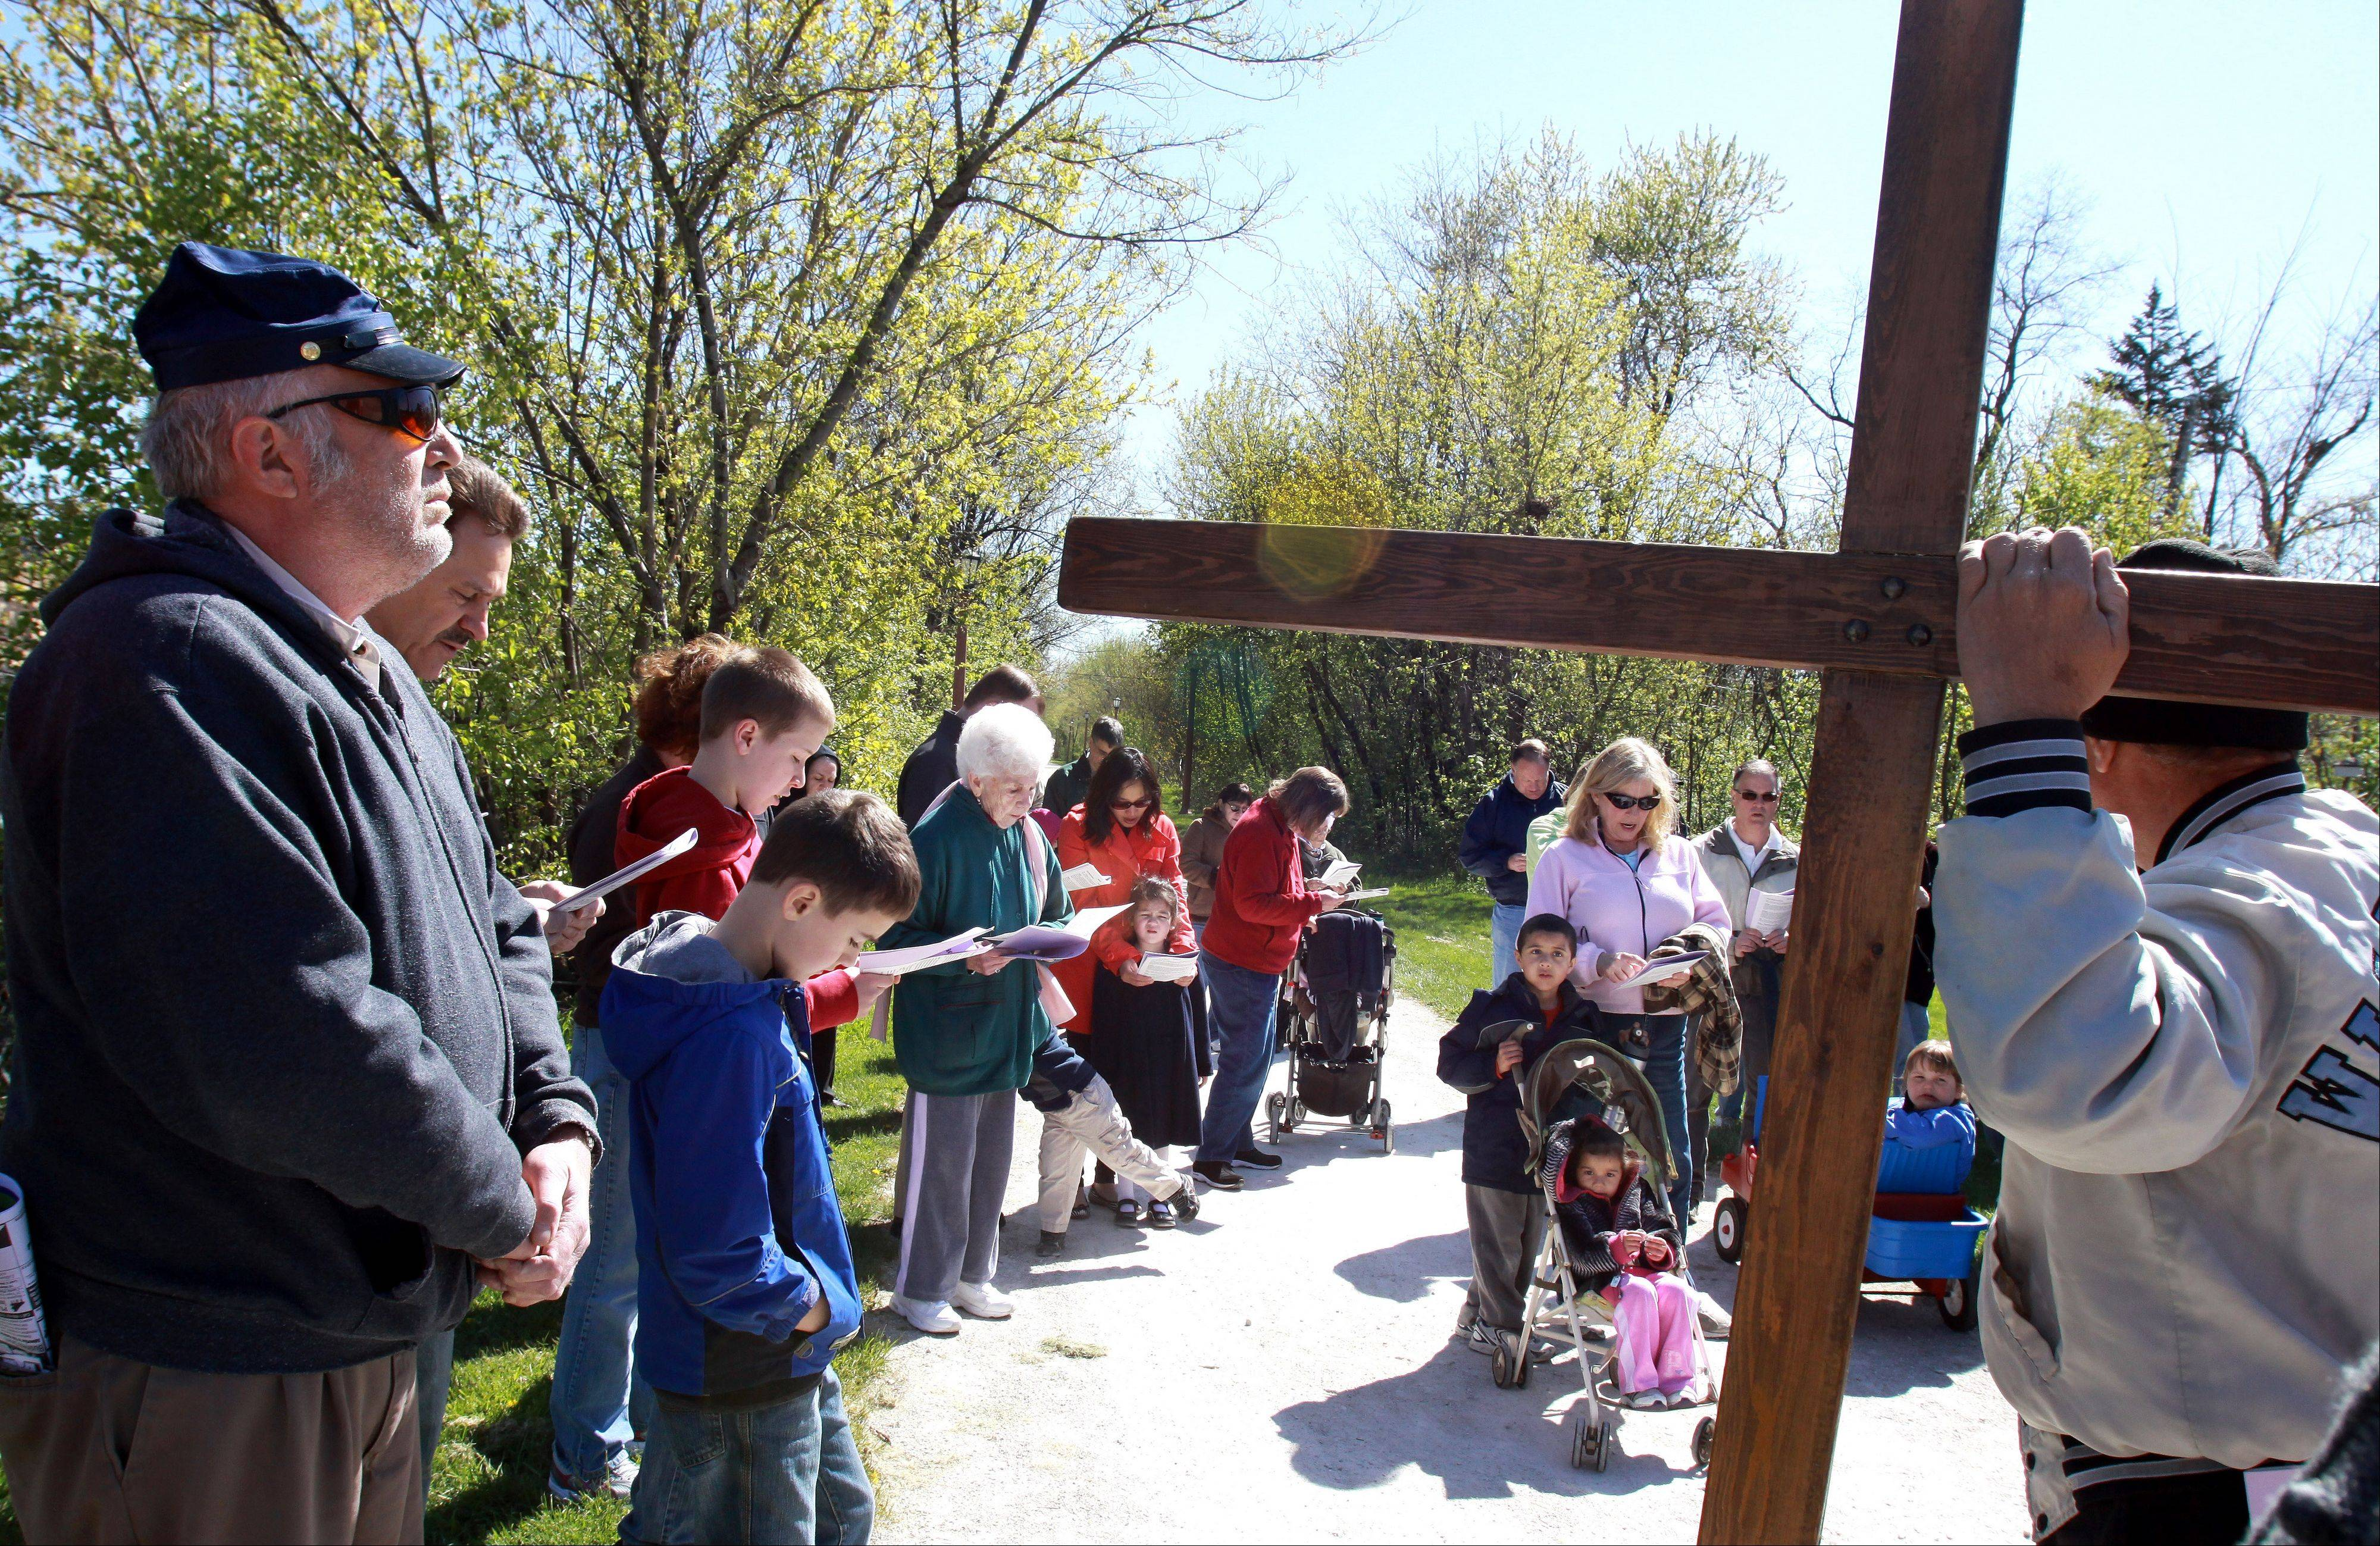 Parishioners take part in the 20th annual St. Alexander Church Good Friday Walk in Villa Park.